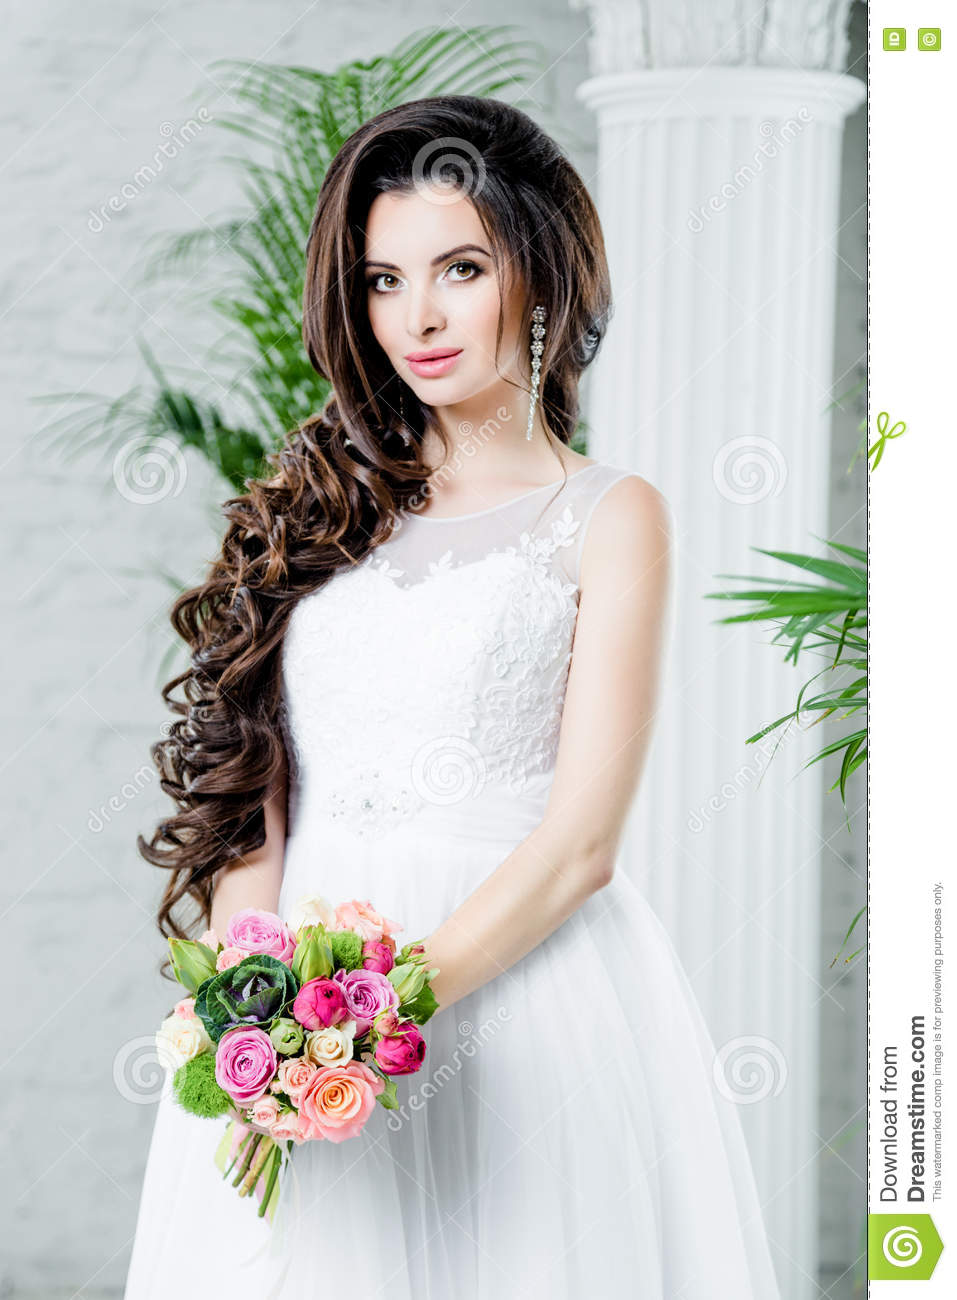 e29995e6cc94 Gorgeous bride in luxury wedding dress. Bride. Perfect Creative Make up and  Long Wavy Hair. Hairstyle, wedding jewelry. Beautiful Woman with Shiny  Brown ...